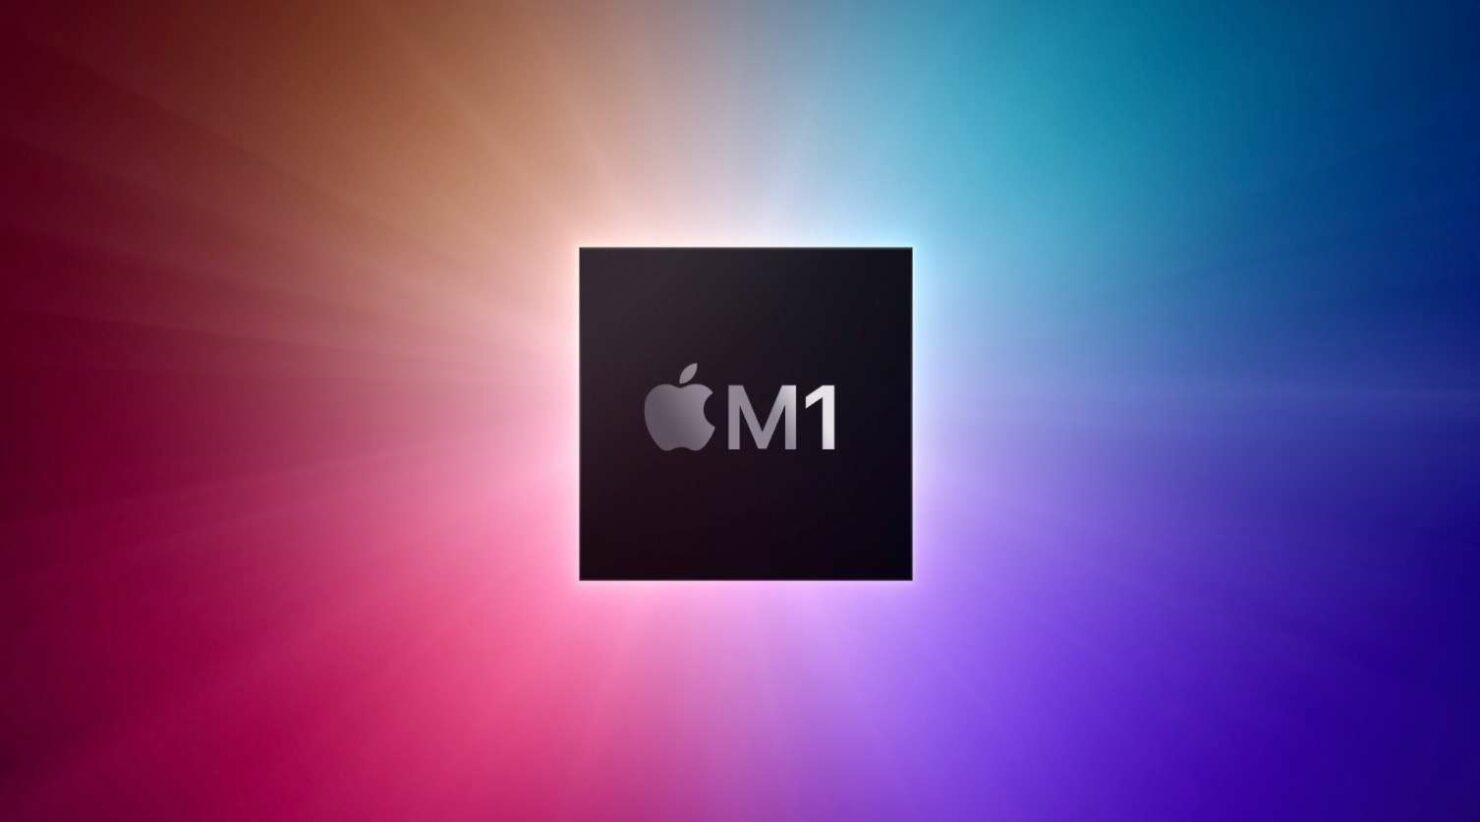 Attempts Are Being Made to Reverse-Engineer Apple's M1 Chip; Make It Open-Source to Be Compatible With Other Platforms